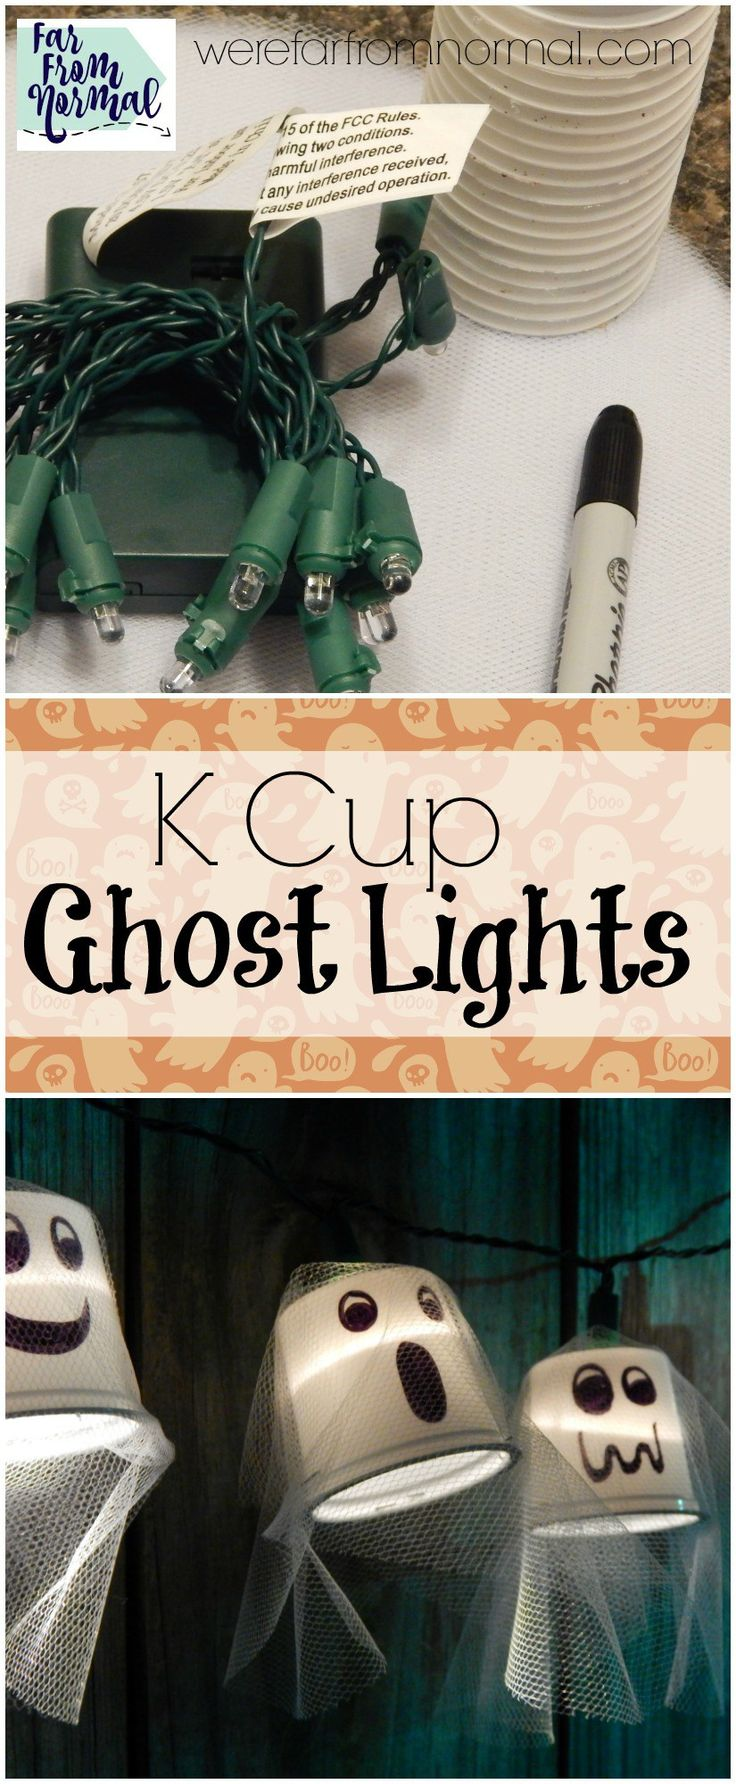 k-cup-ghost-lights                                                                                                                                                                                 More